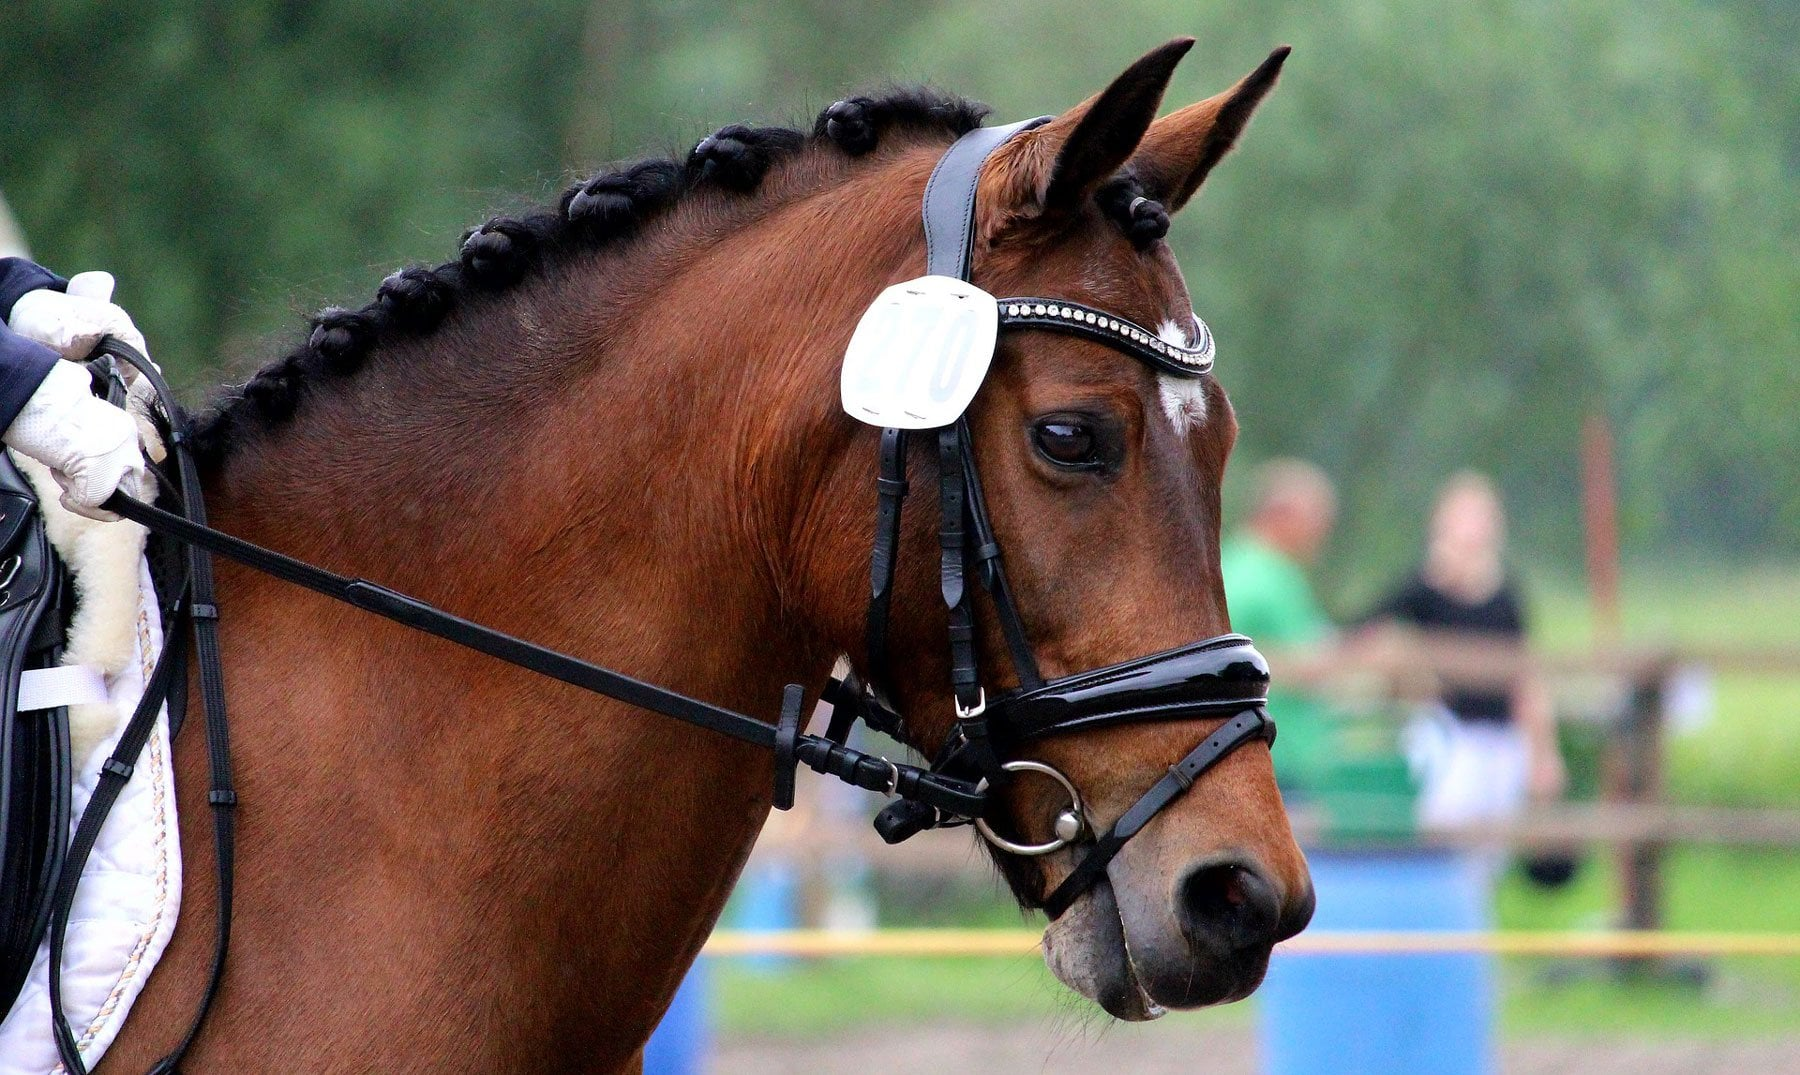 A guide to Dressage for Beginners